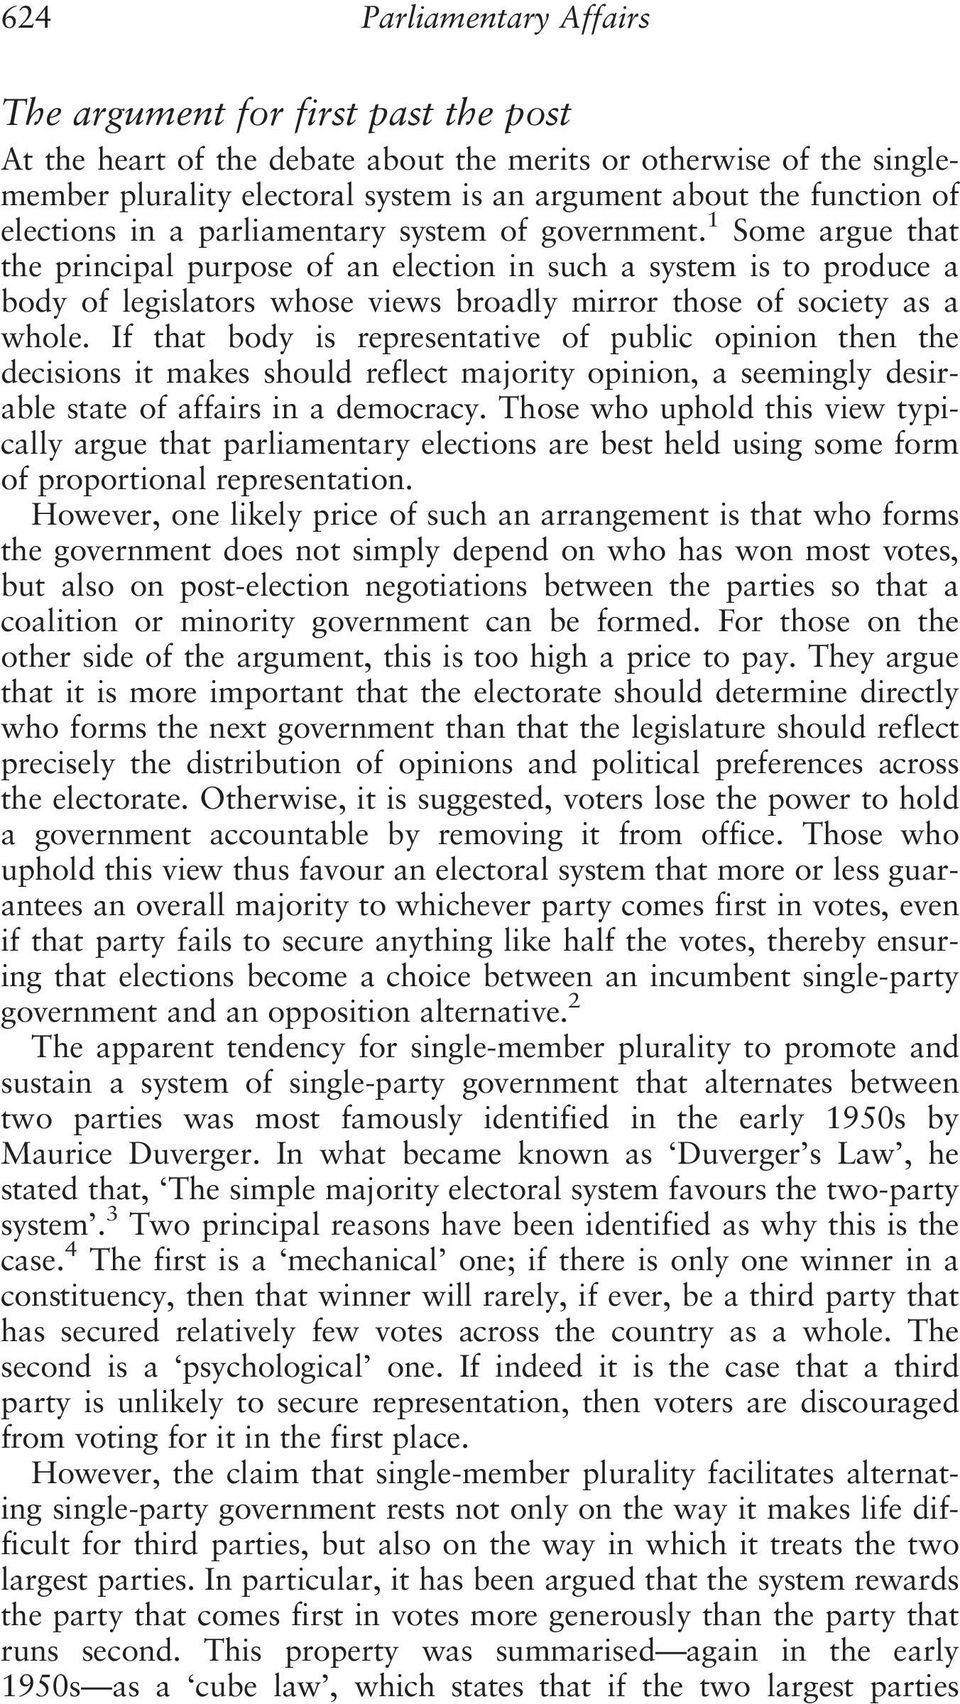 1 Some argue that the principal purpose of an election in such a system is to produce a body of legislators whose views broadly mirror those of society as a whole.